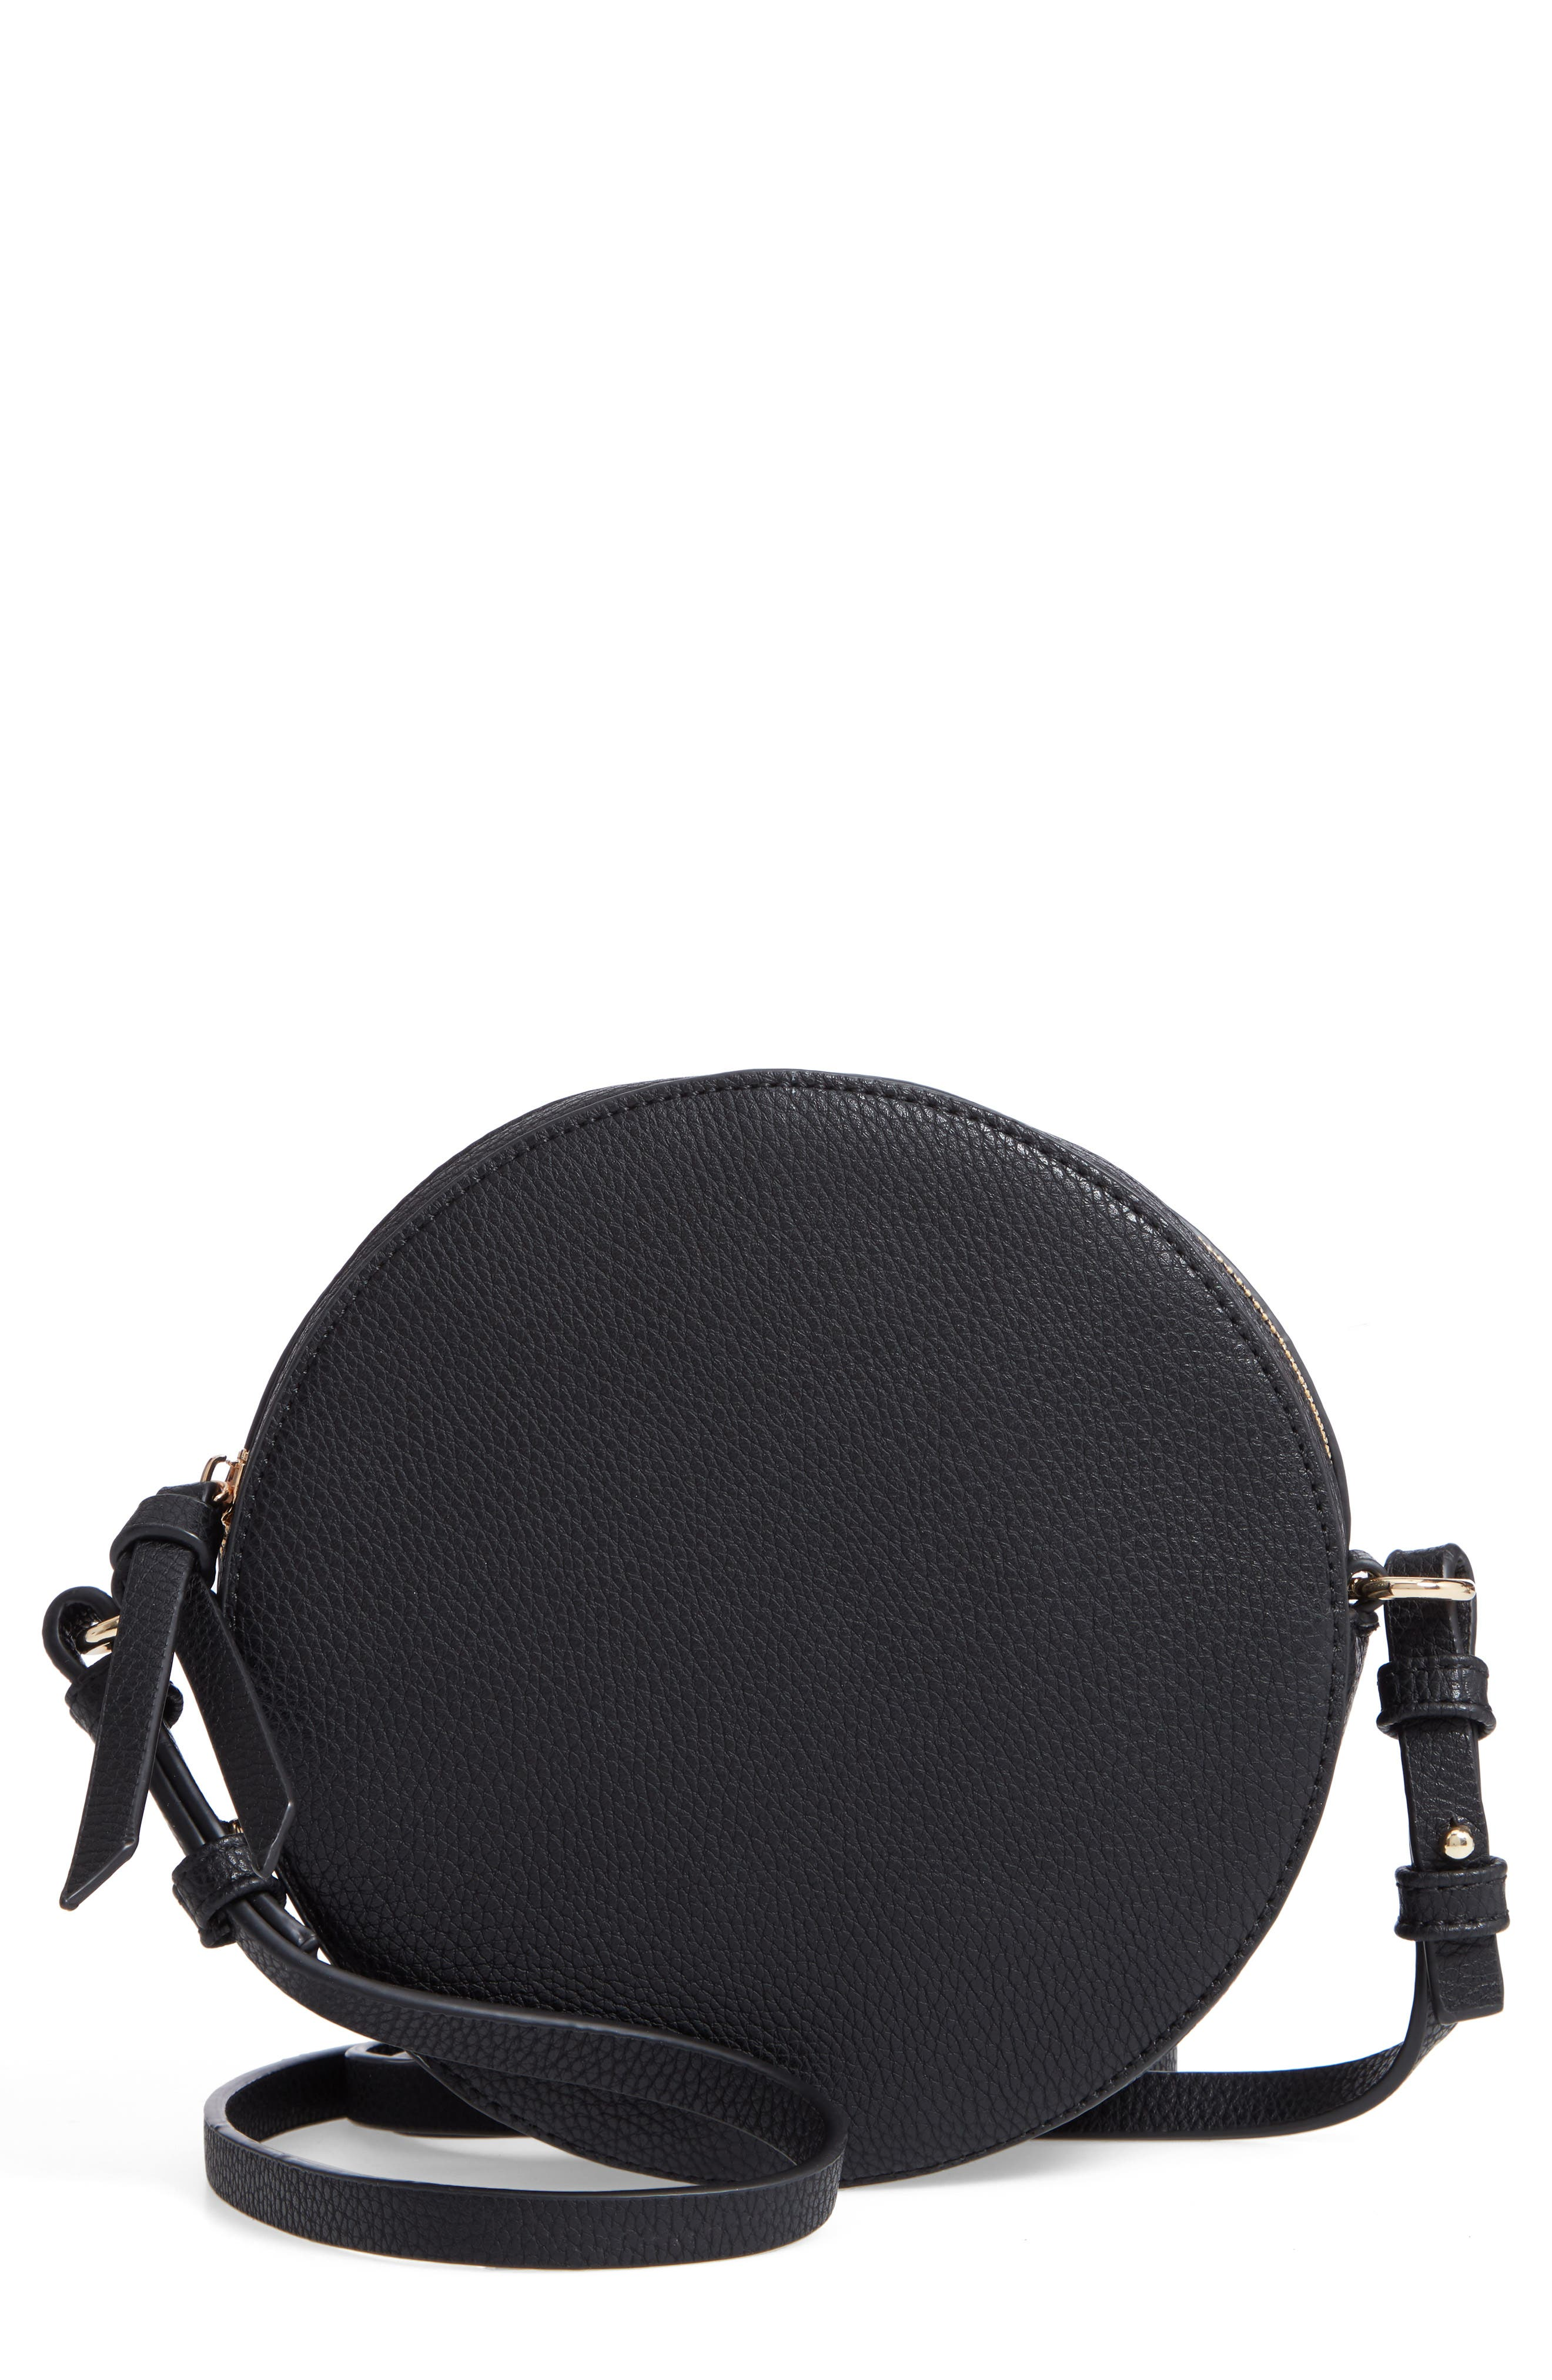 Cassie Faux Leather Circle Crossbody Bag,                             Main thumbnail 1, color,                             001